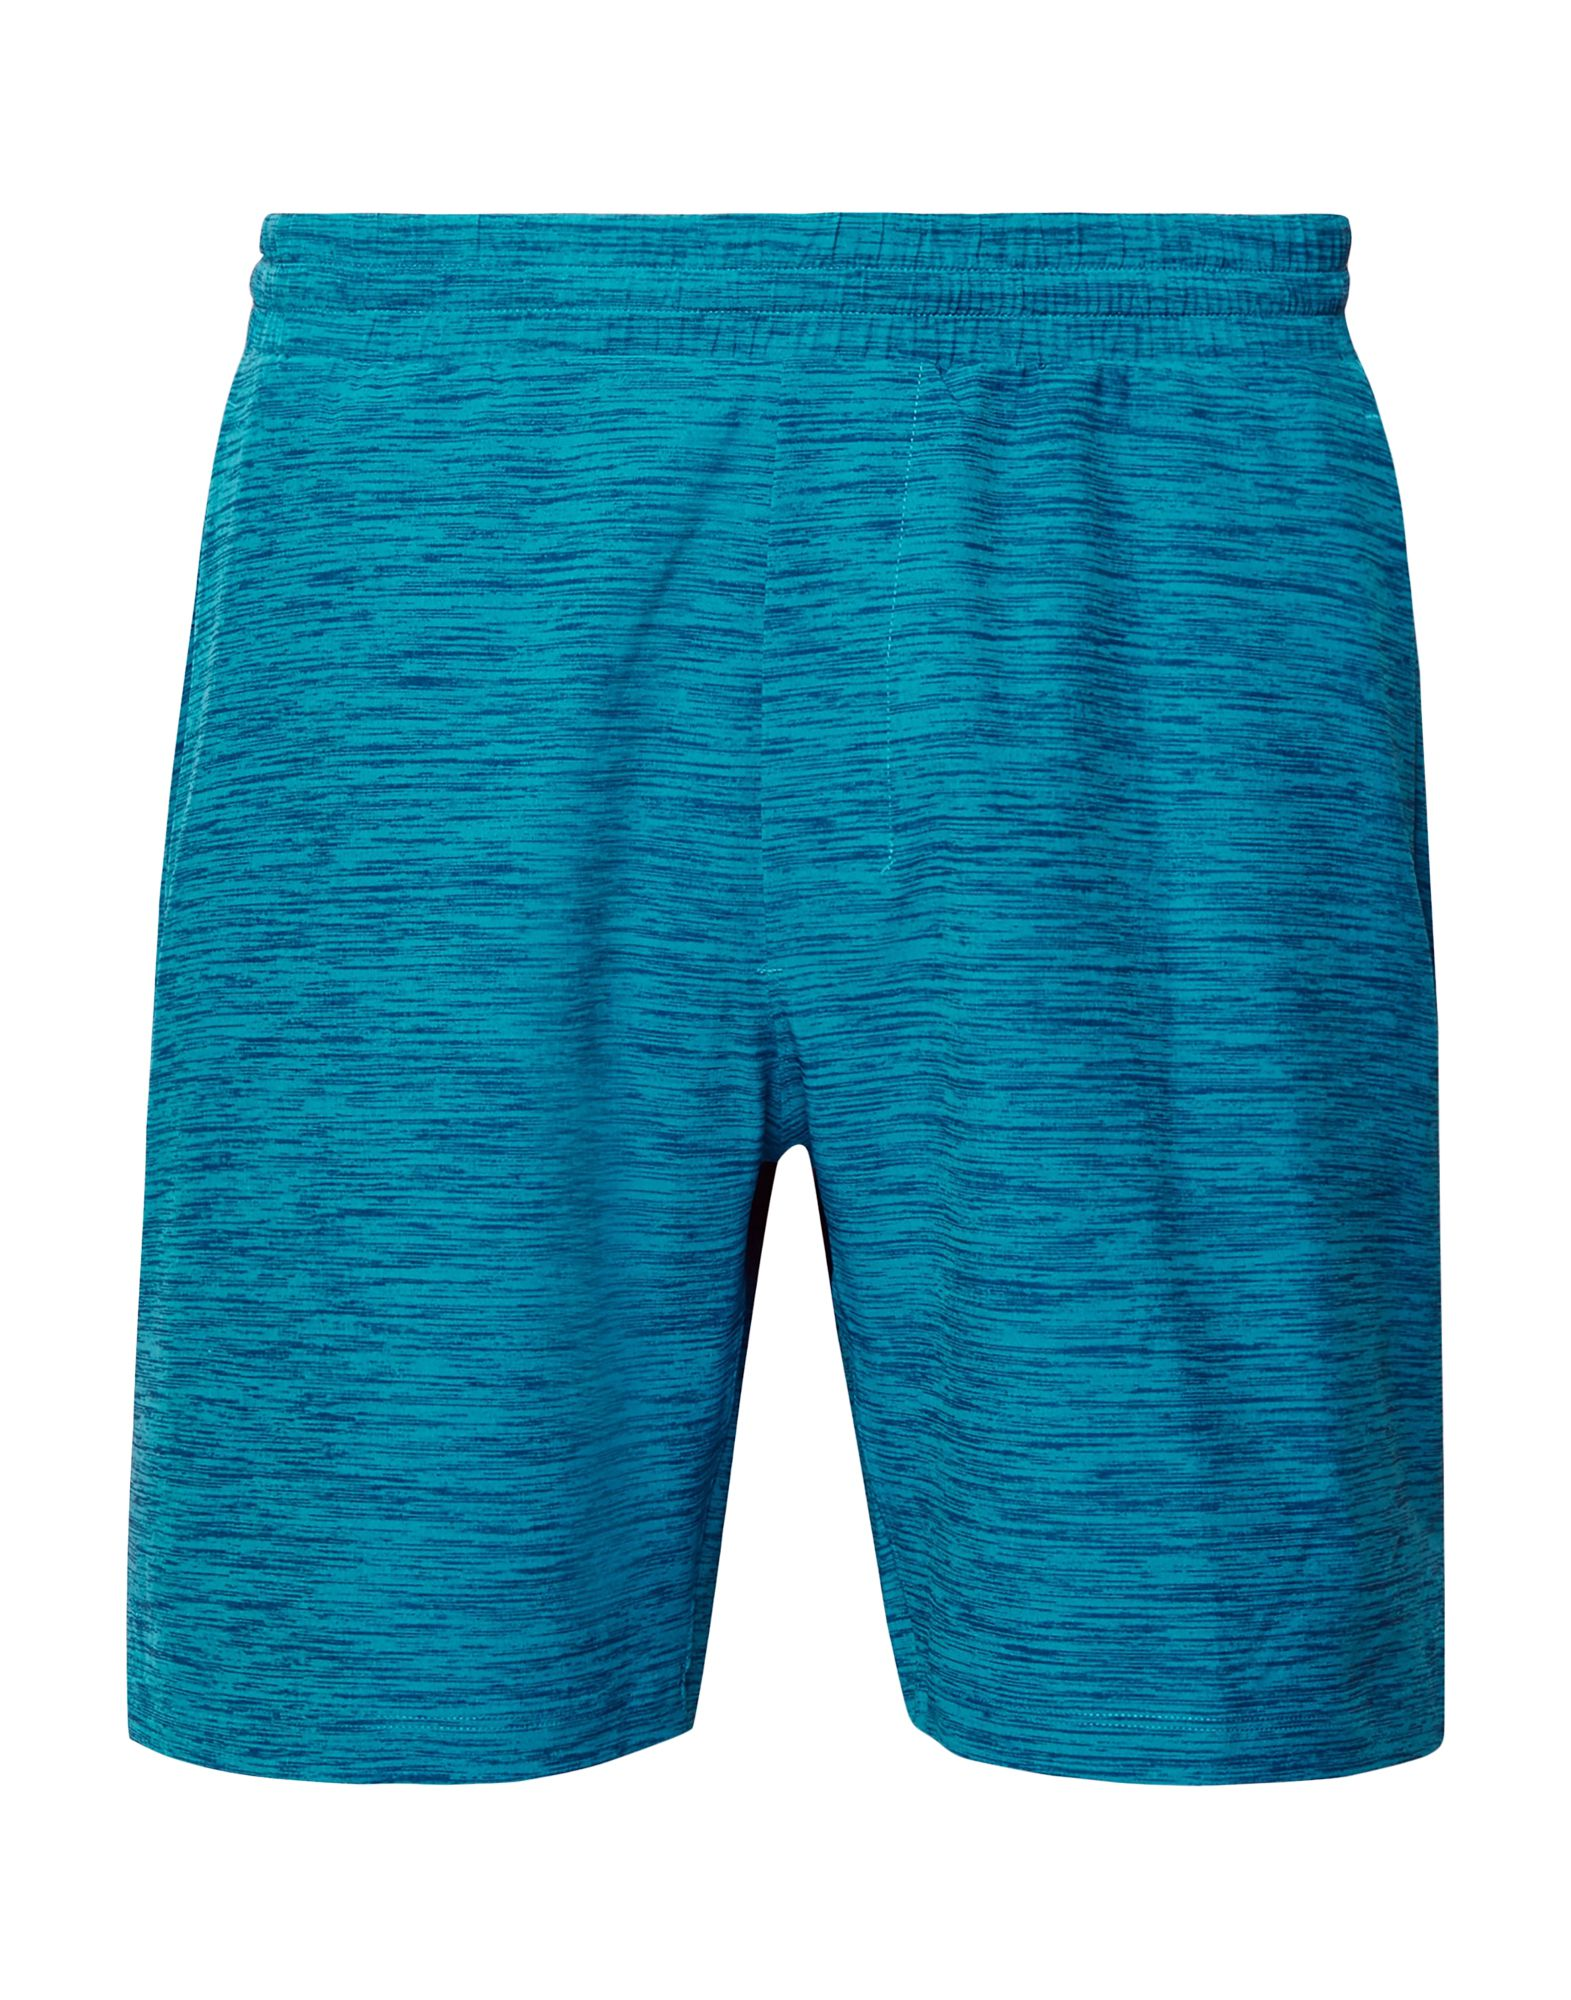 LULULEMON Swim trunks. synthetic jersey, no appliqués, two-tone, multipockets, elasticized waist, internal slip, stretch. 90% Polyester, 10% Elastane